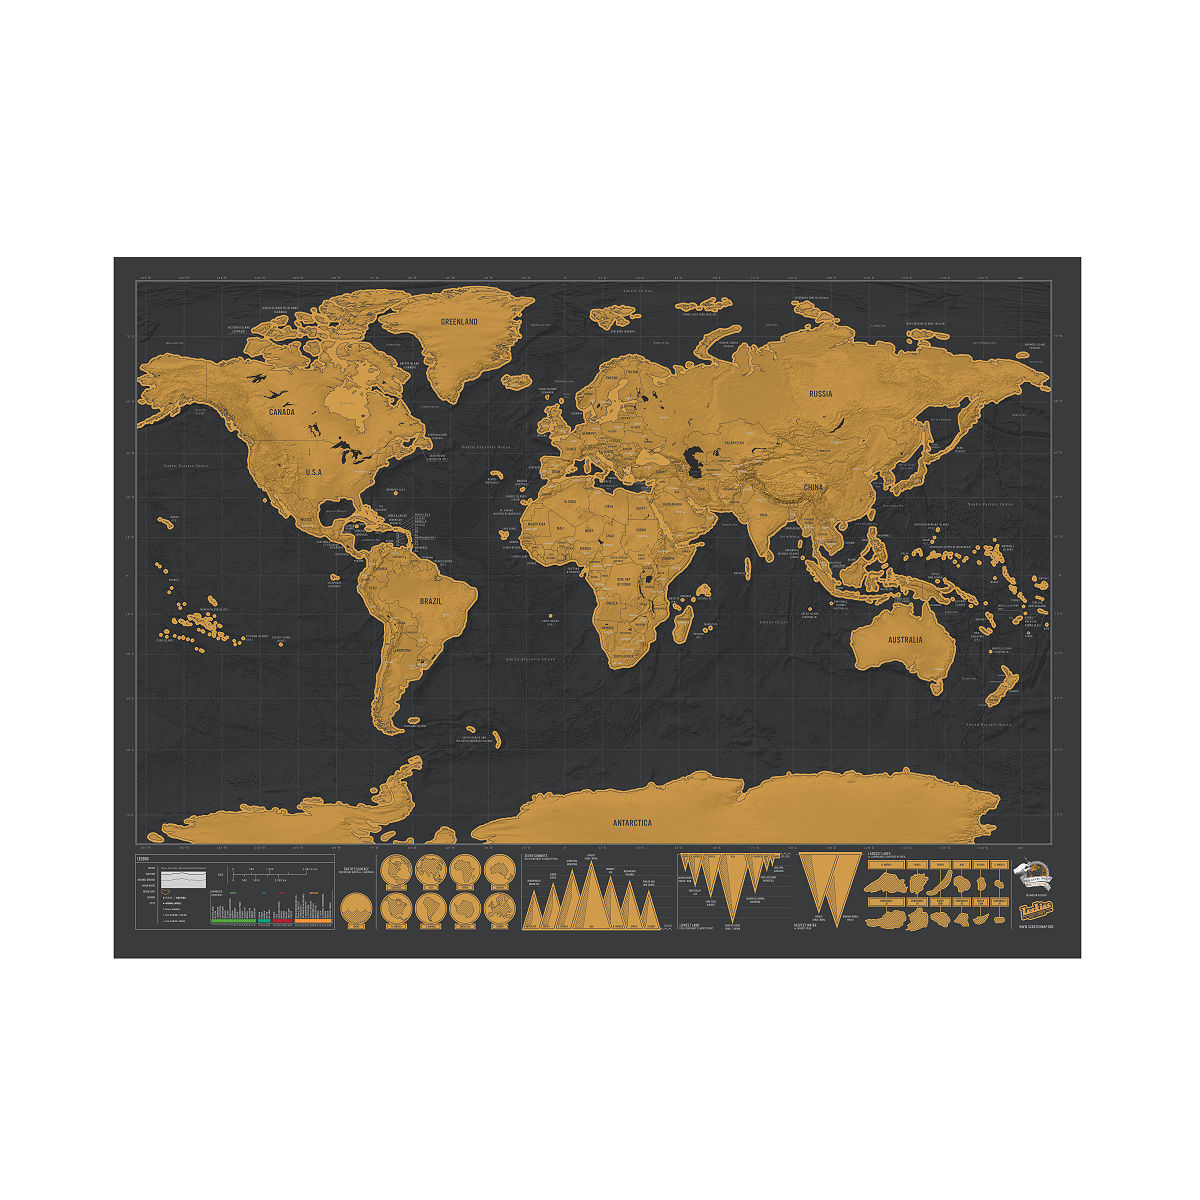 Scratch map deluxe scratch off wall maps uncommongoods scratch map deluxe 2 thumbnail gumiabroncs Images